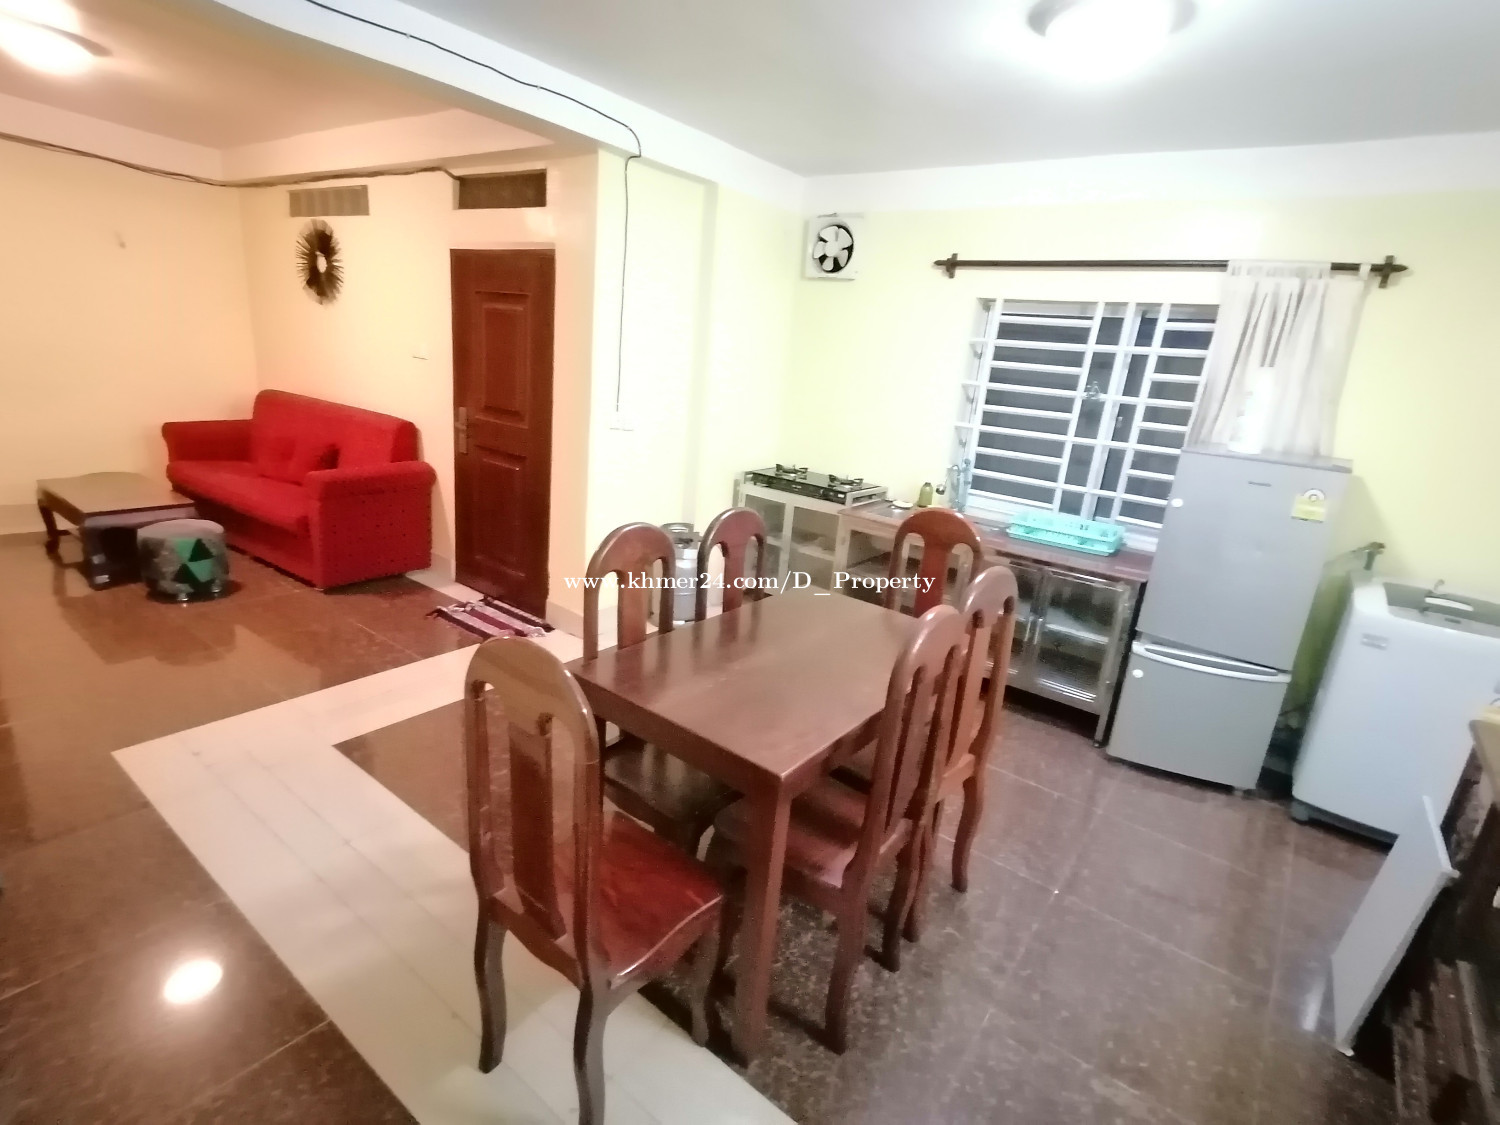 2 Bedrooms Apartment for Rent near Russian Market